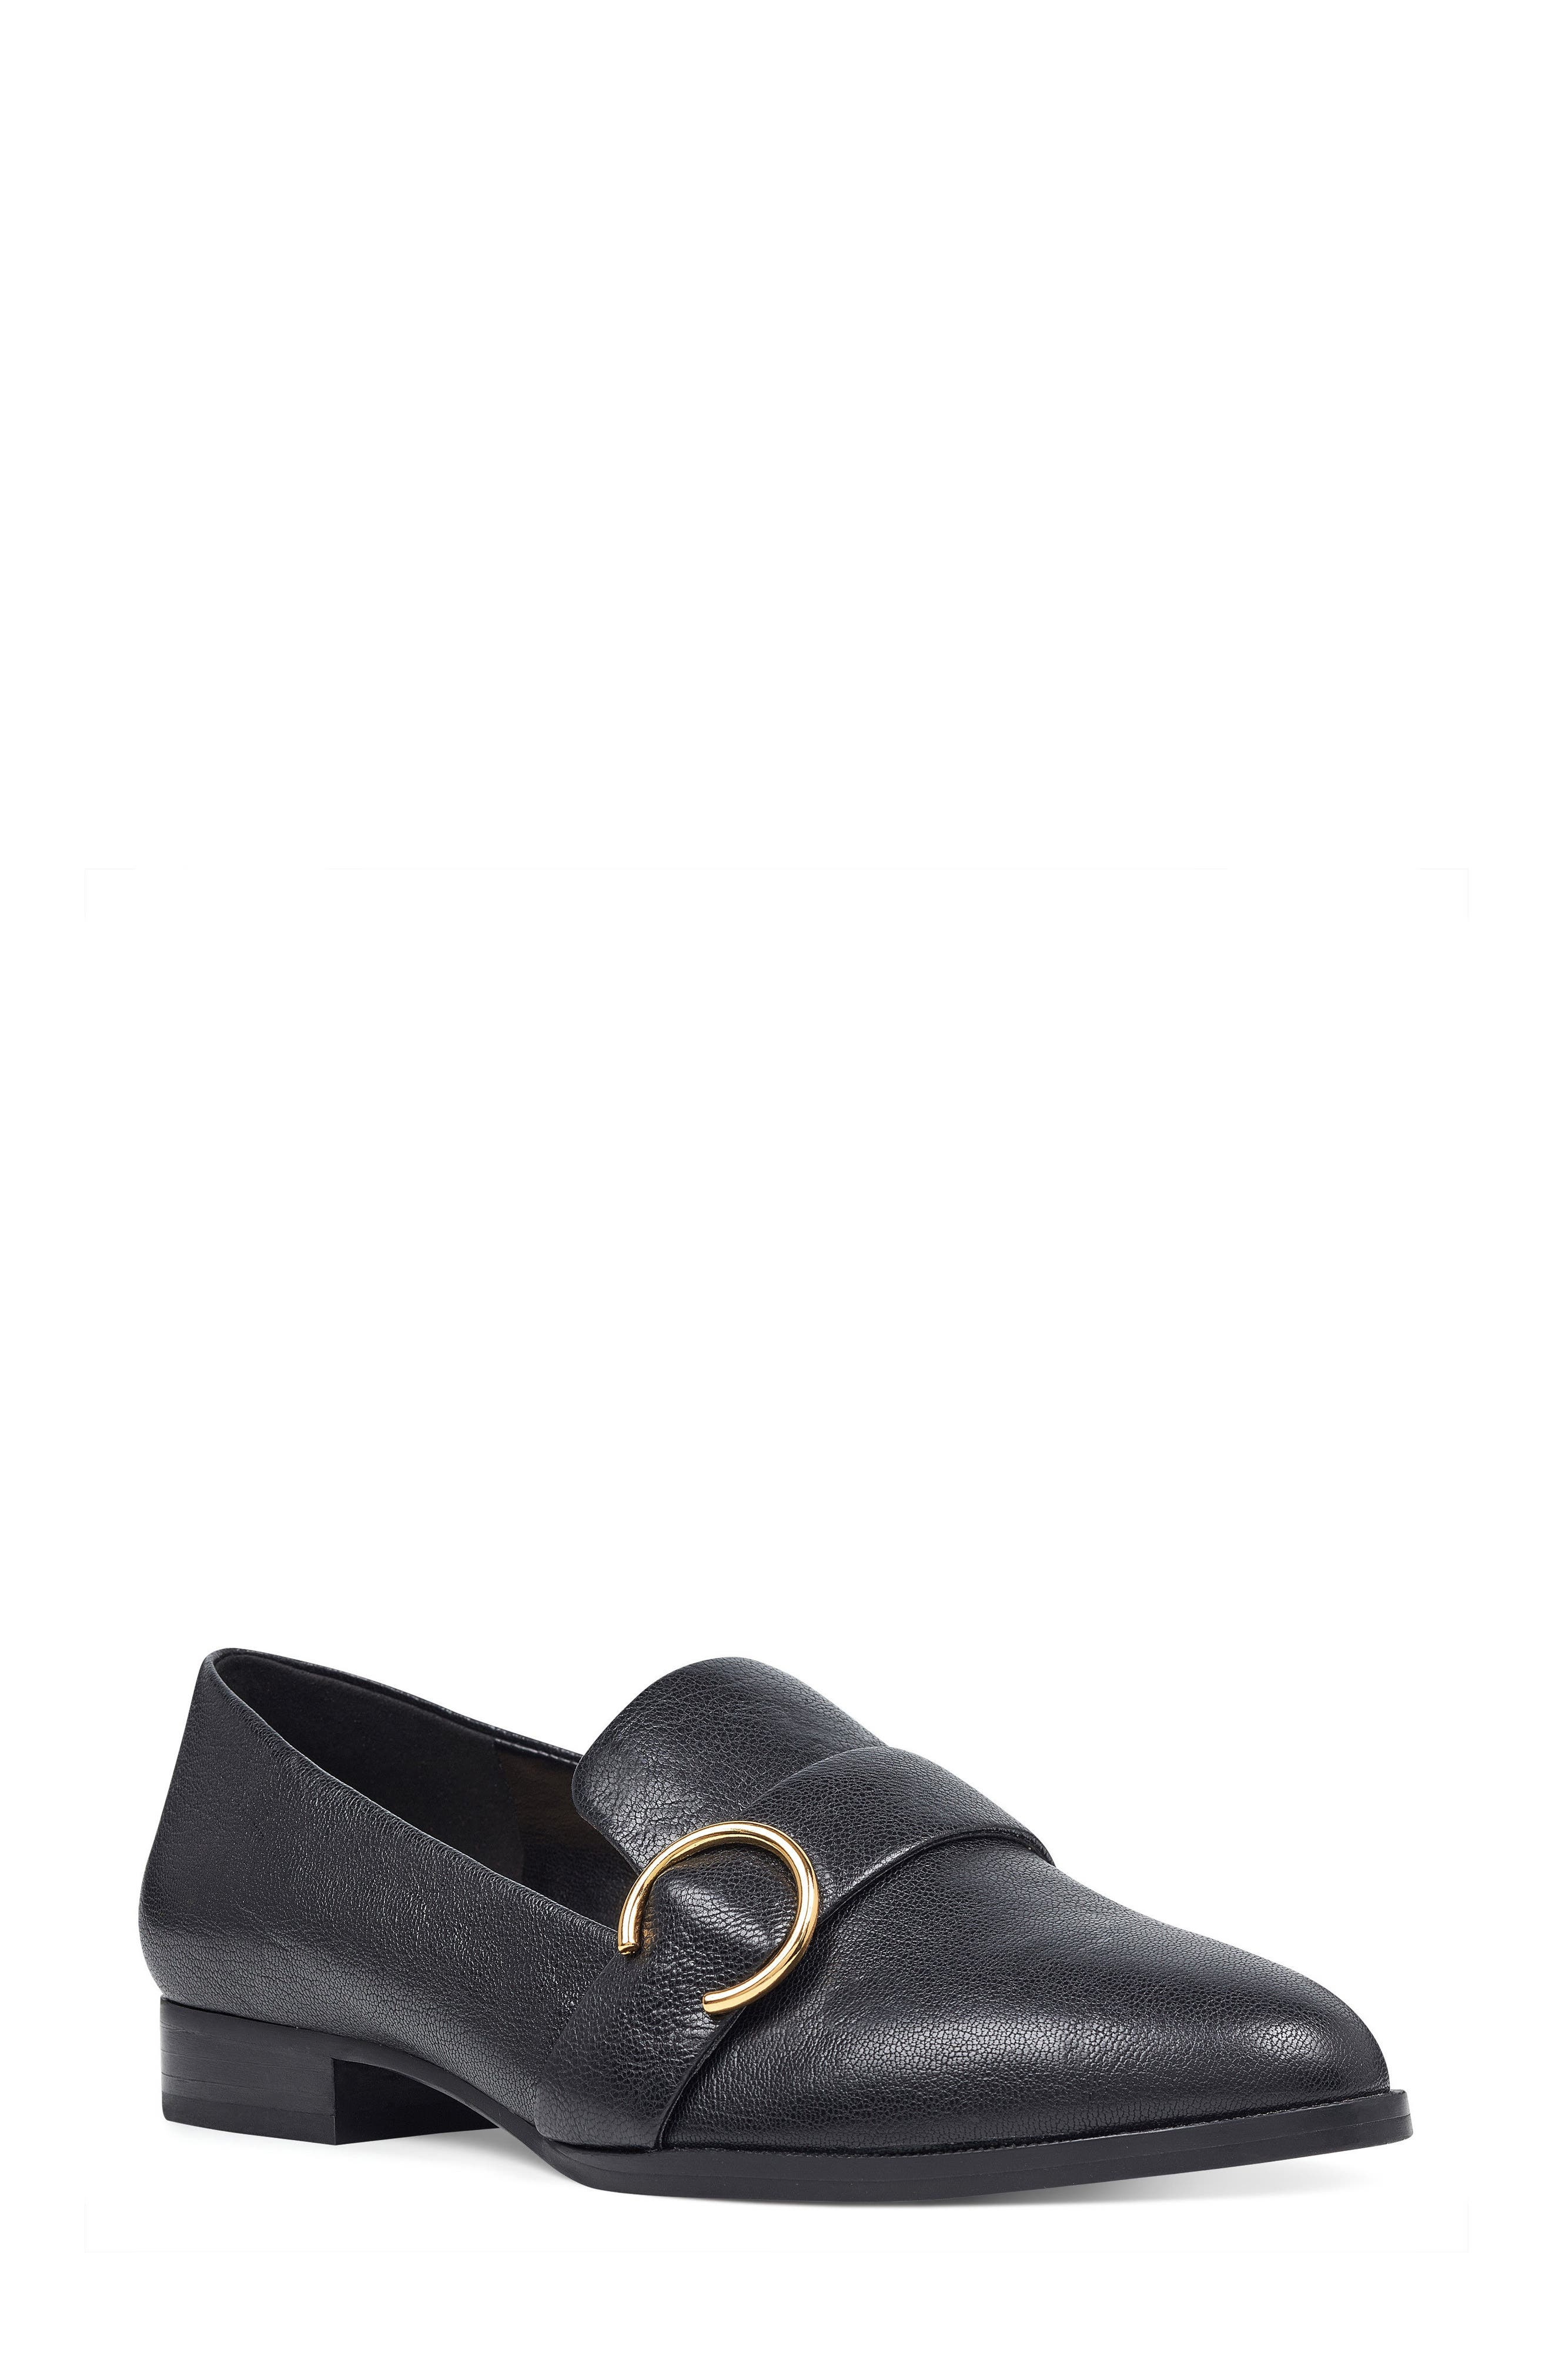 Huff Loafer Flat,                             Main thumbnail 1, color,                             Black Leather